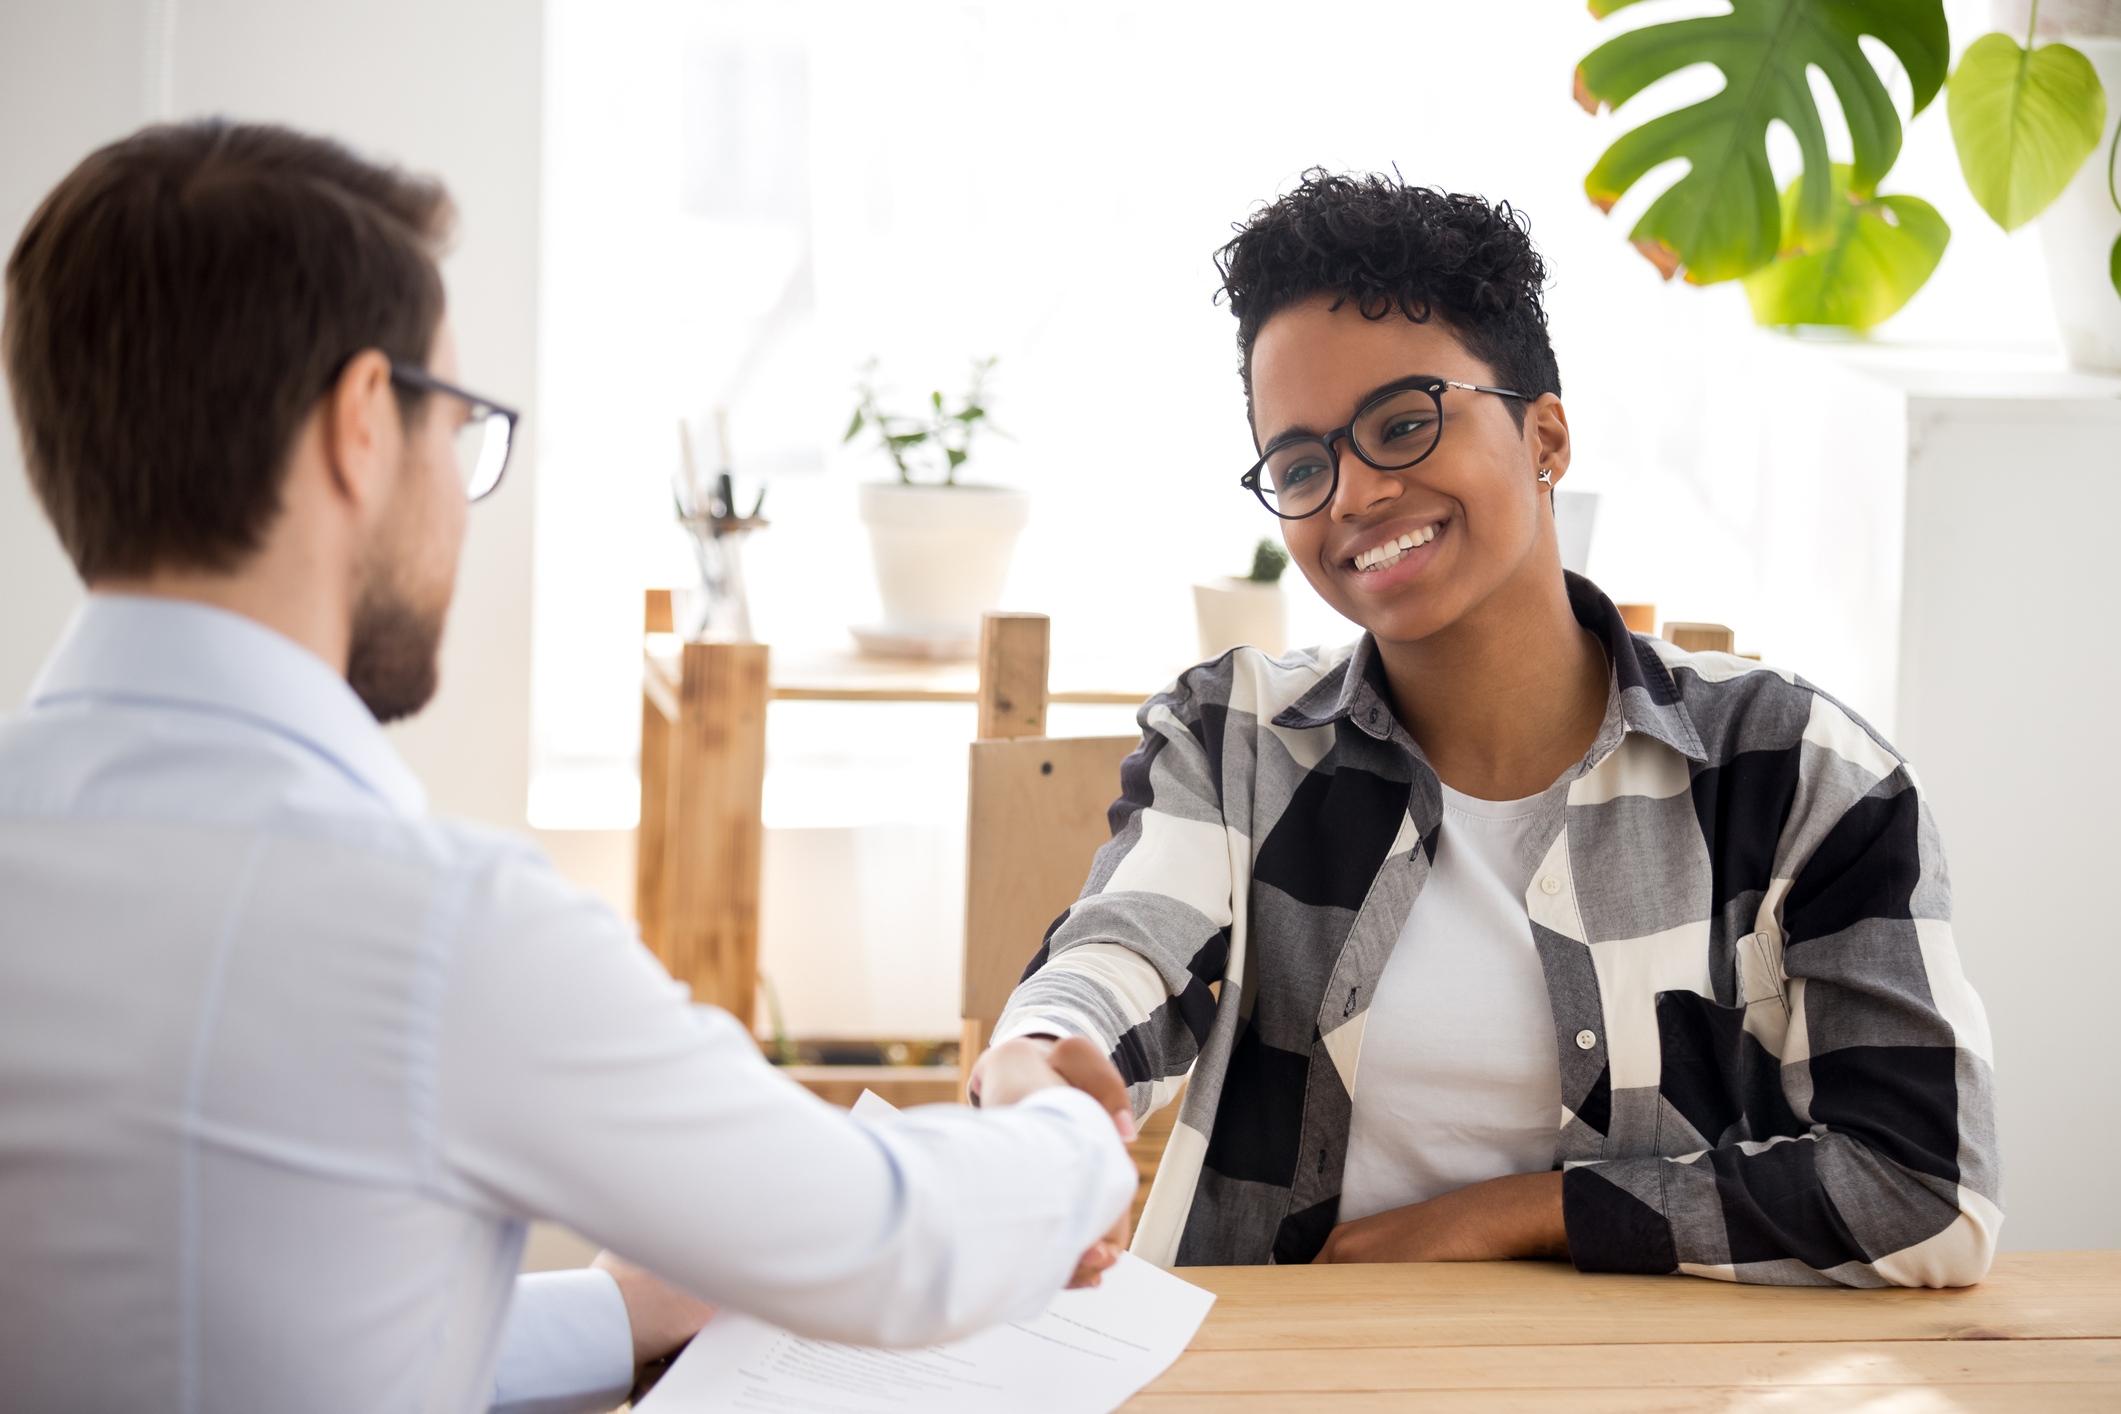 Resume writing tips to transition from private sector to international development 1c0c70a4 8bde 4a92 8a2c d11aeca95fde